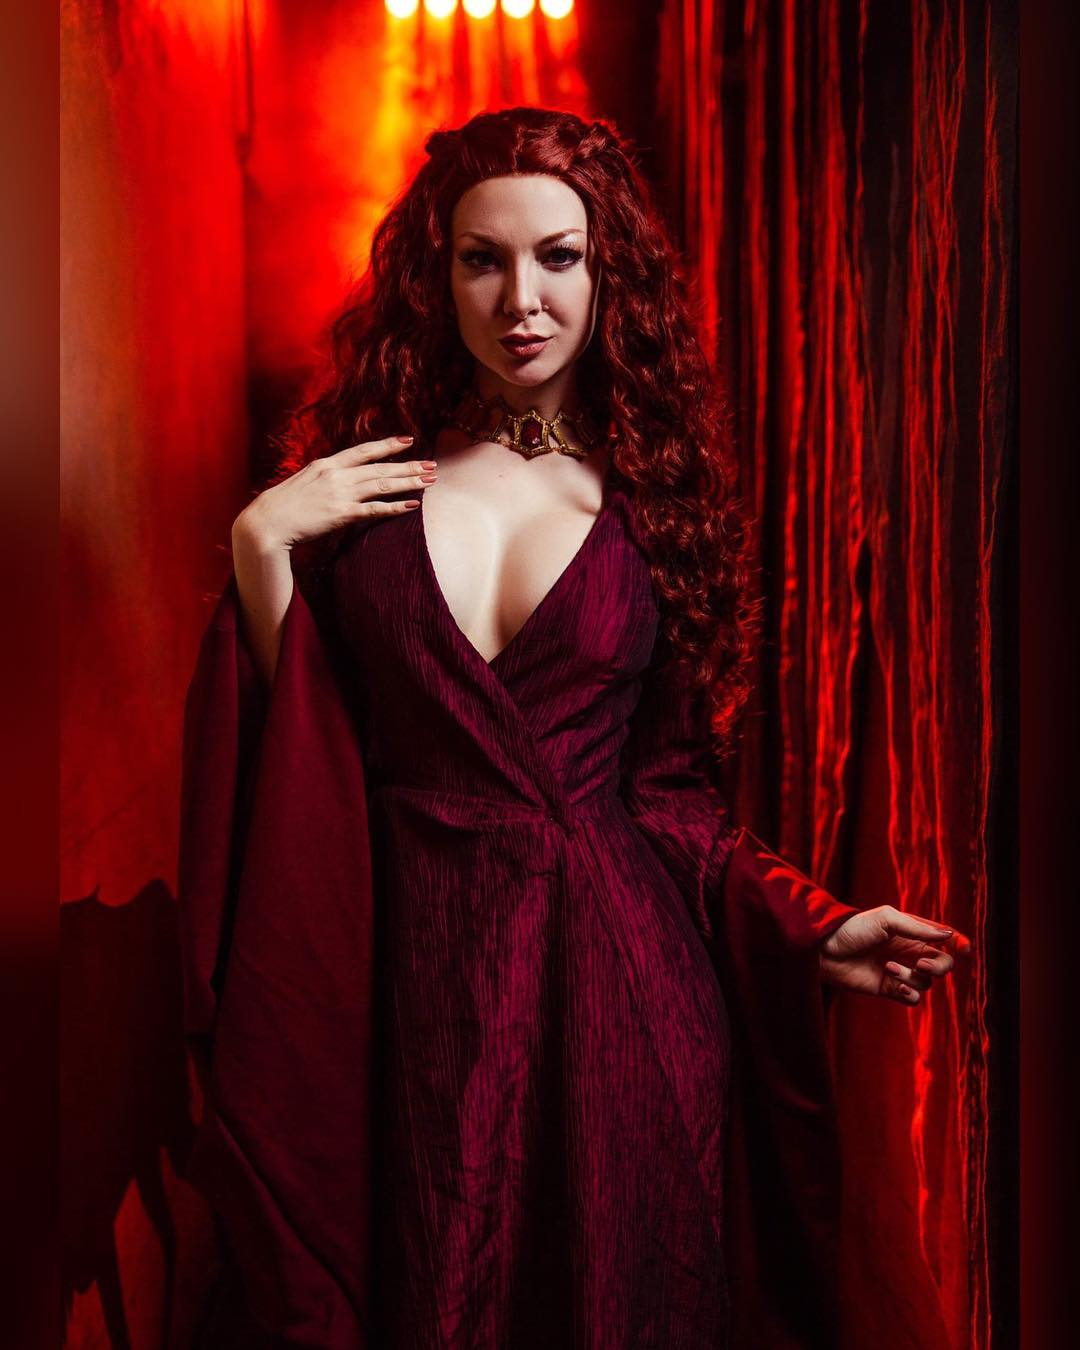 Melisandre cosplay by Ashlynne Dae